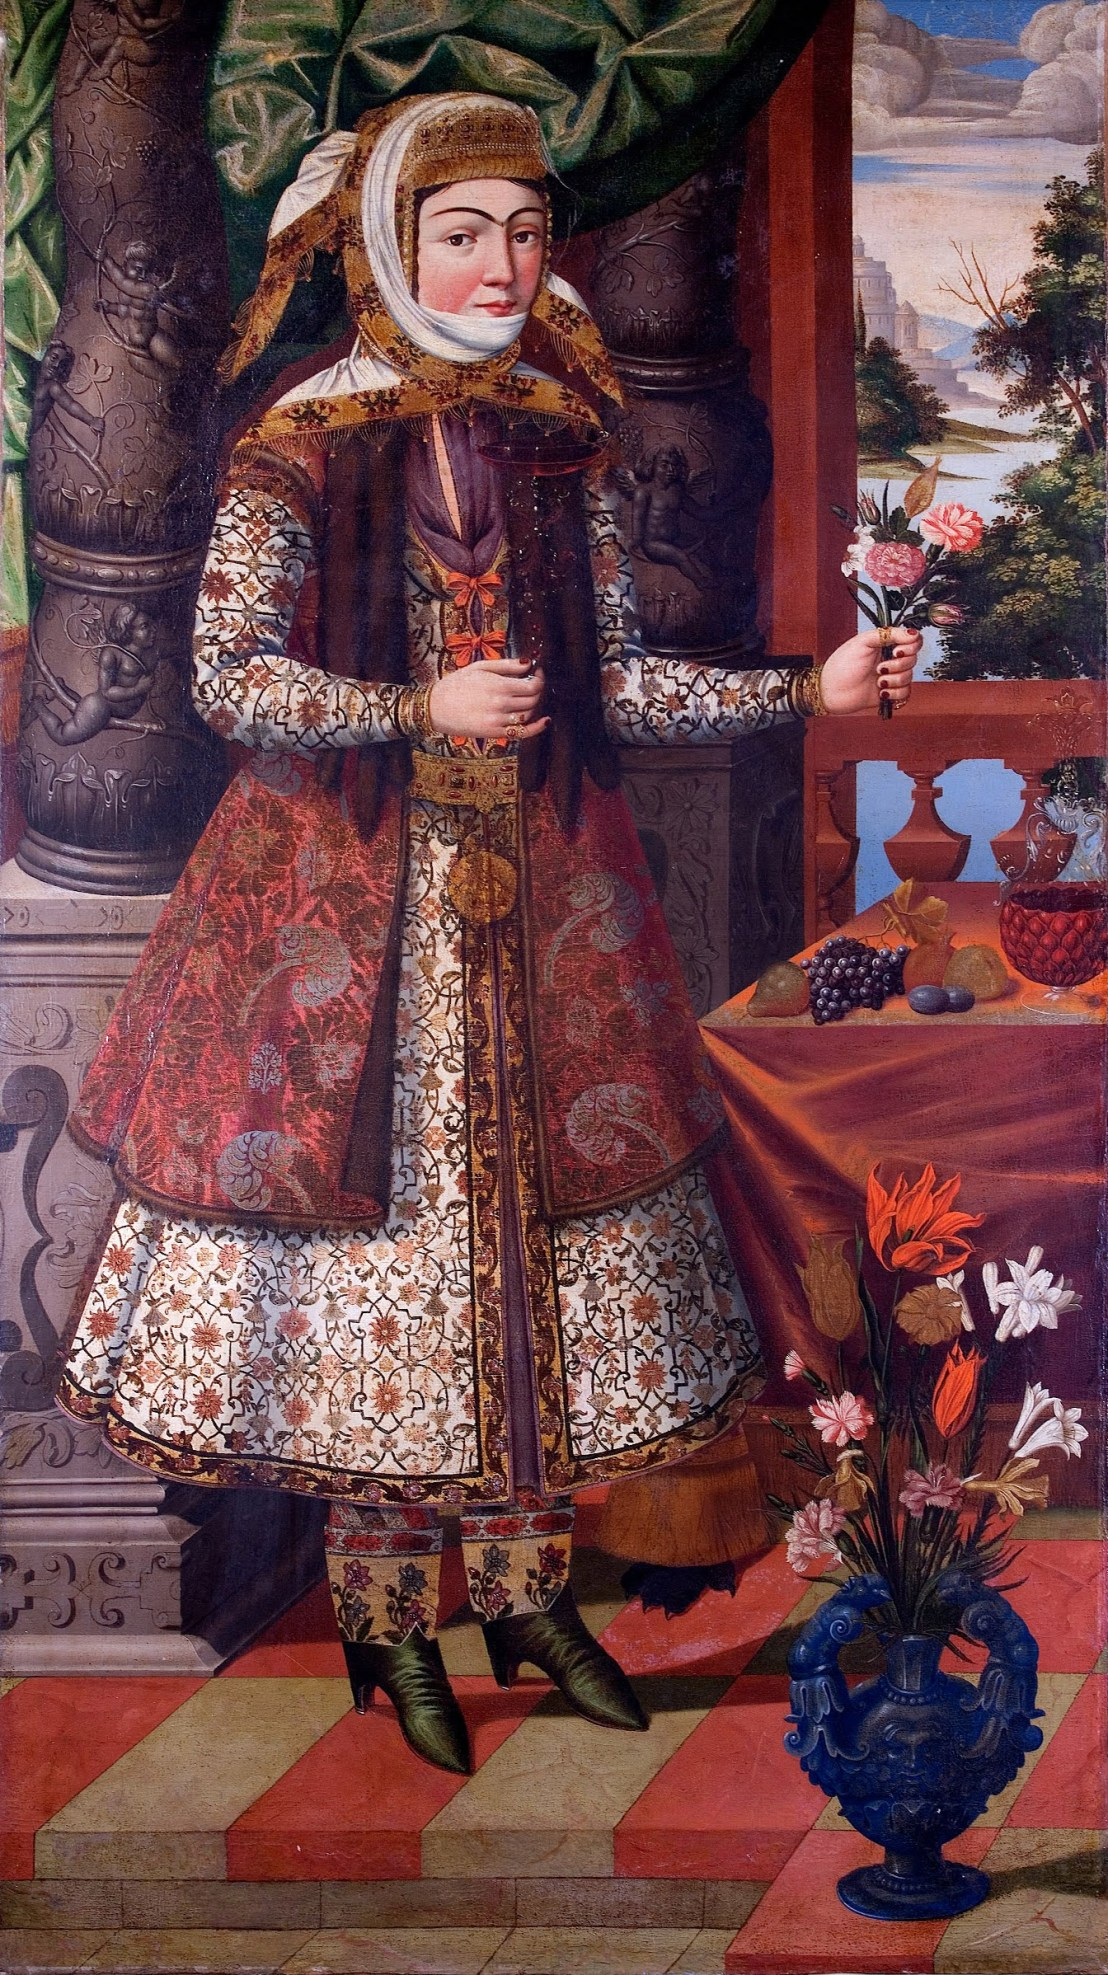 Portrait of an Armenian-girl from Iran, late 17th century. From the Museum of Islamic Art, Qatar